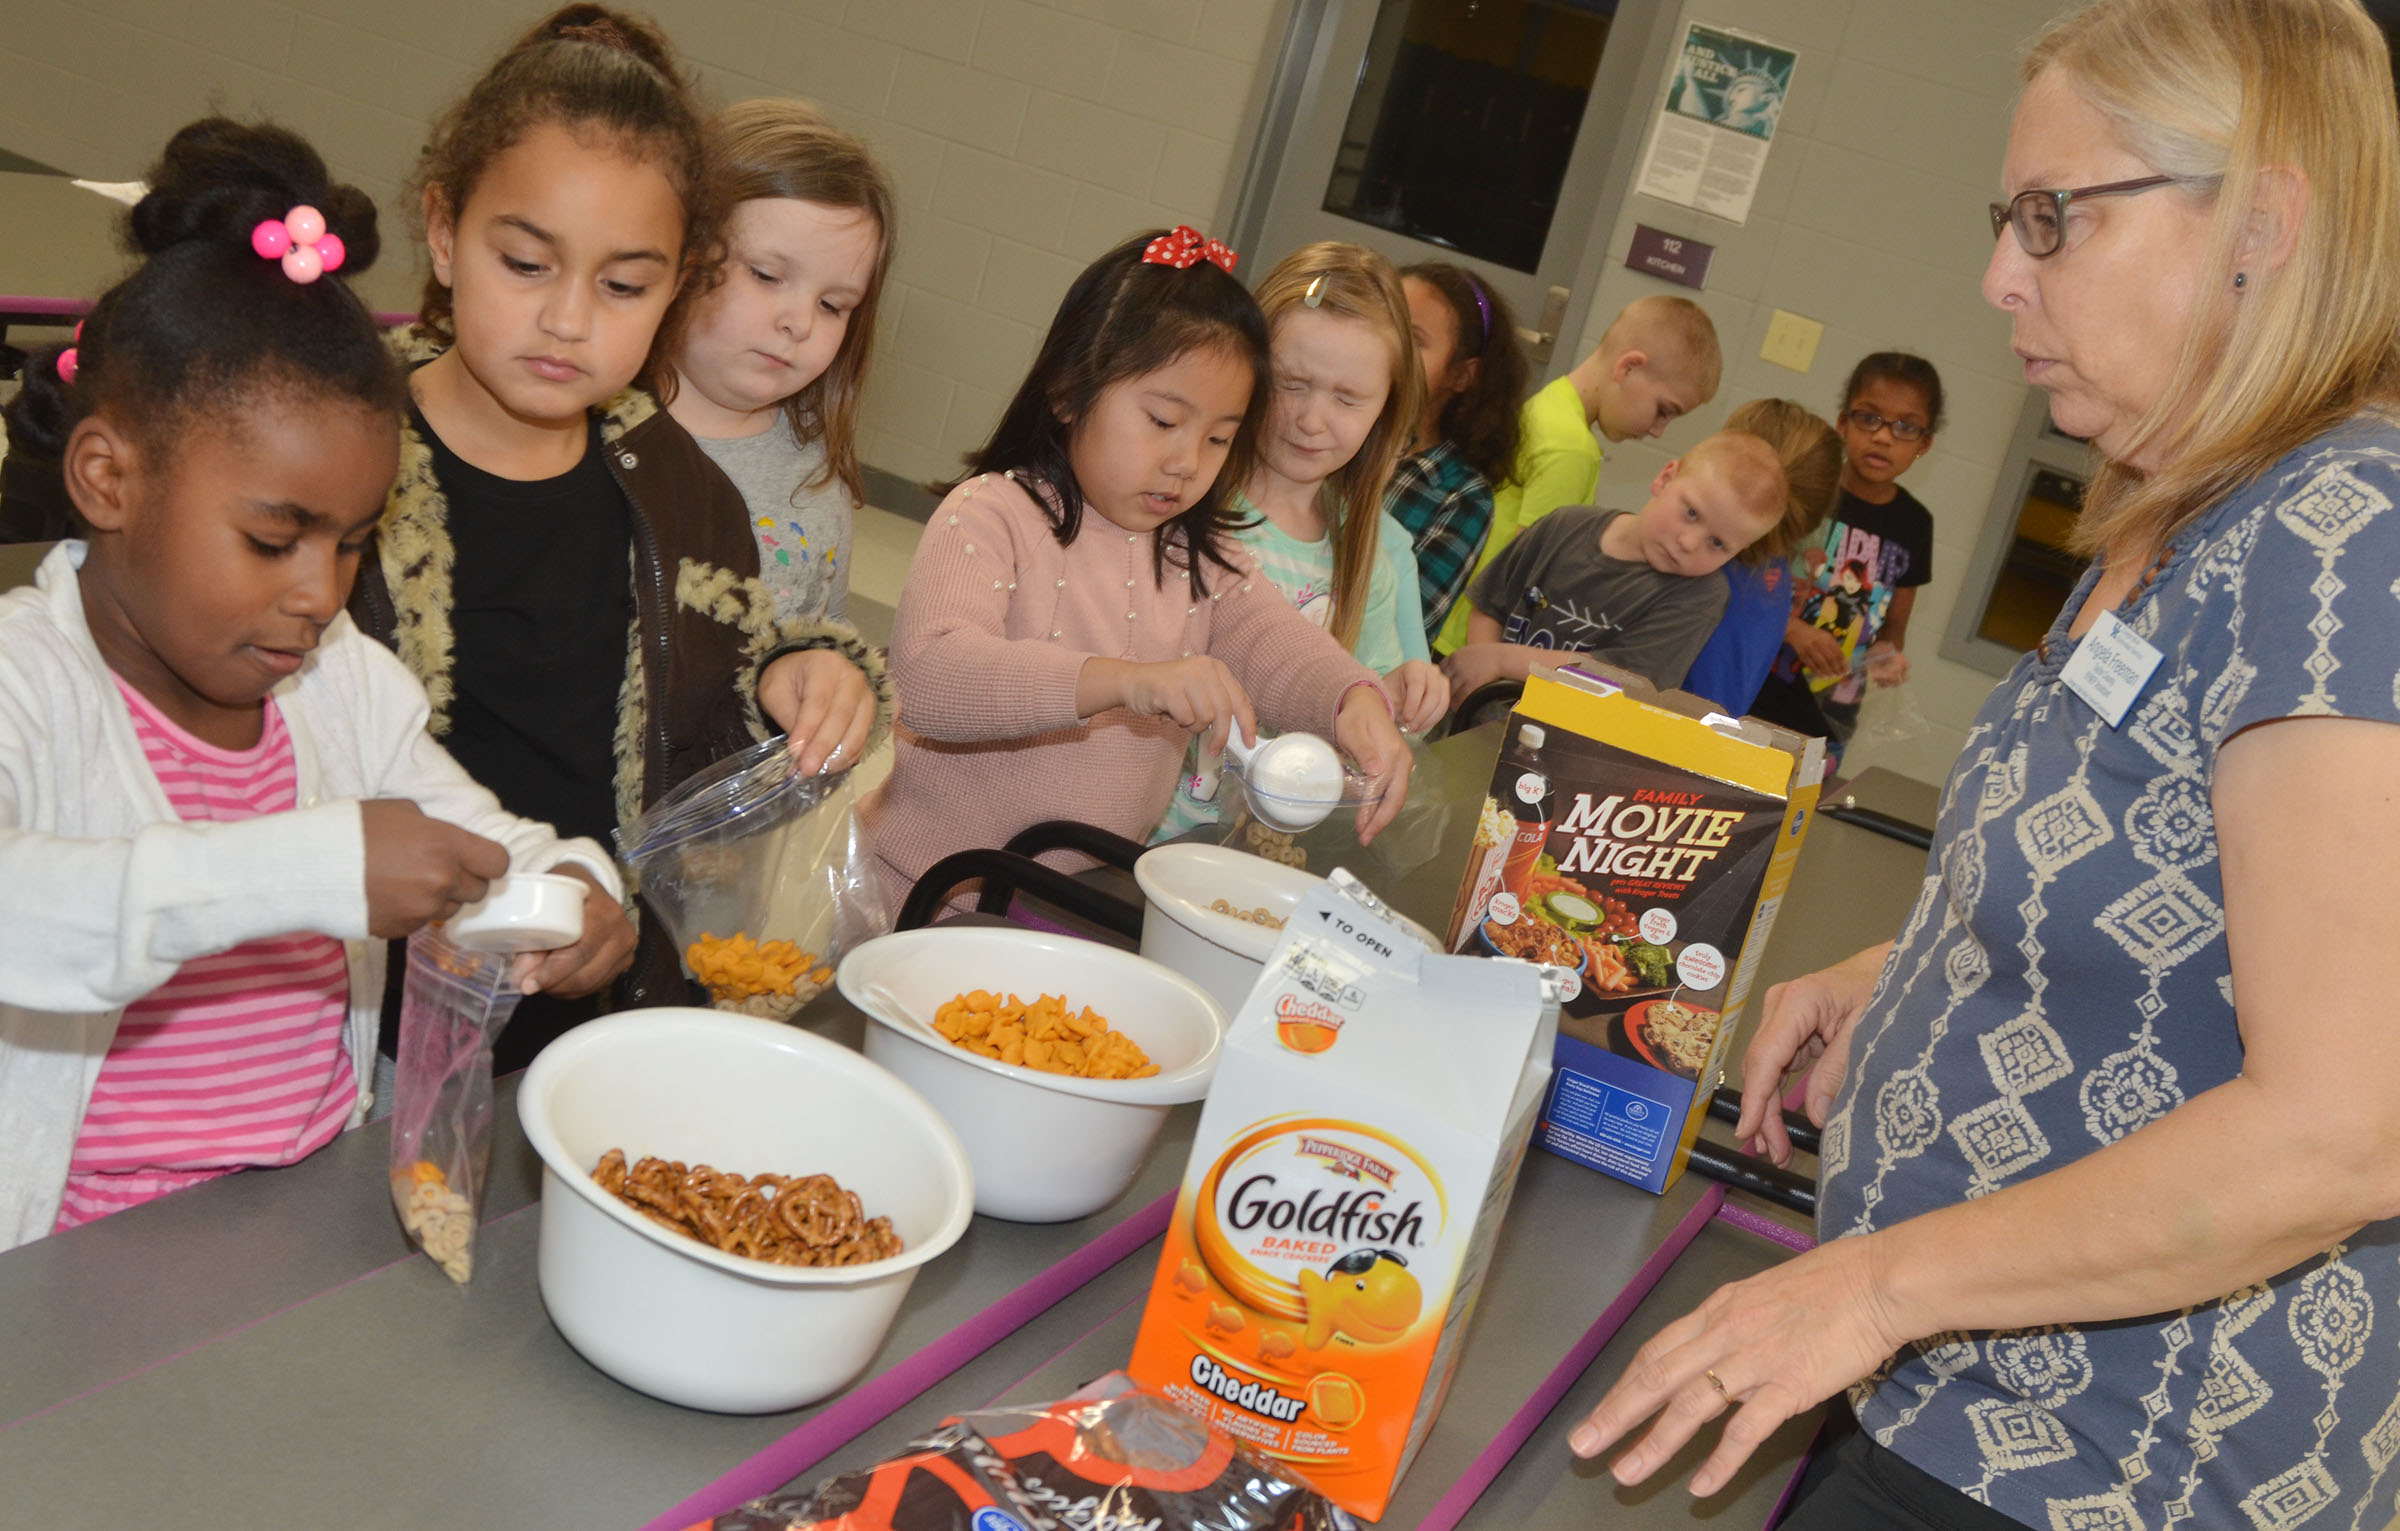 Angie Freeman, expanded foods and nutrition program assistant at Taylor County Extension Office, helps CES first-graders make their trail mix. From left, Destini Gholston, Maleigha Travis, Kierra Maupin and Tina Jiang add snacks to their bags.